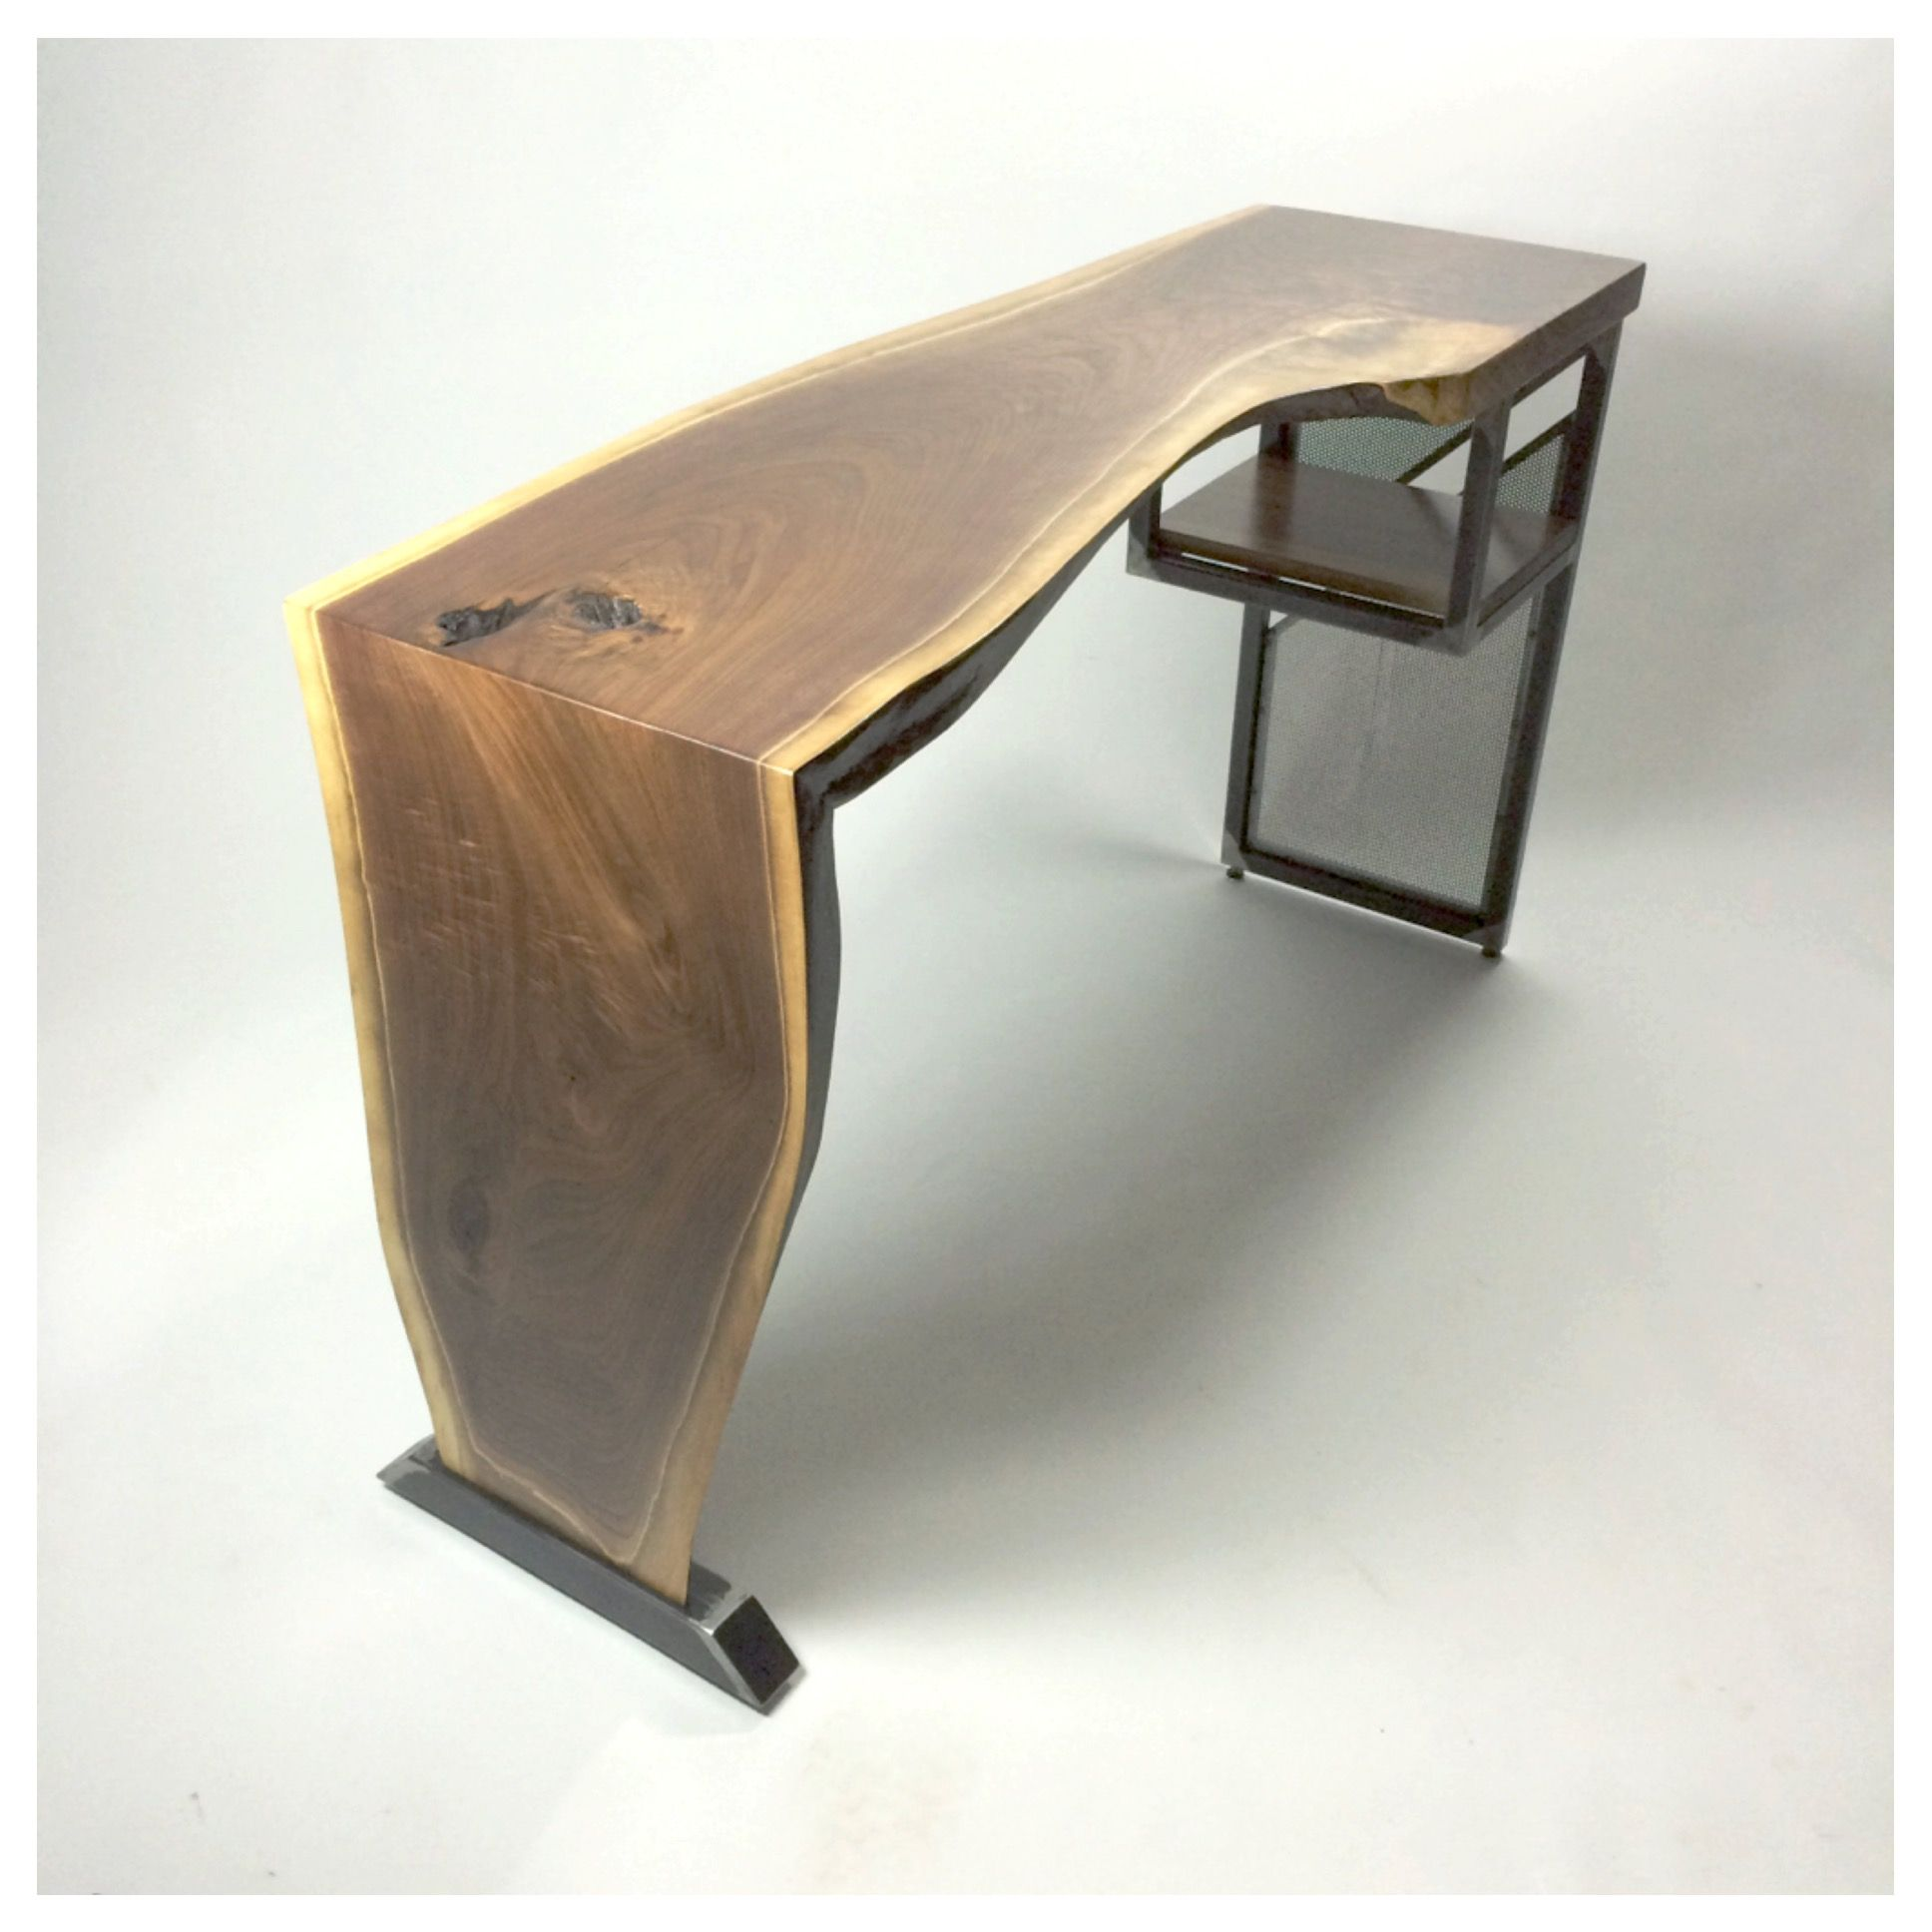 Handmade Live Edge Waterfall Desk Modern Industrial Steel Wood By Cauv Design Llc